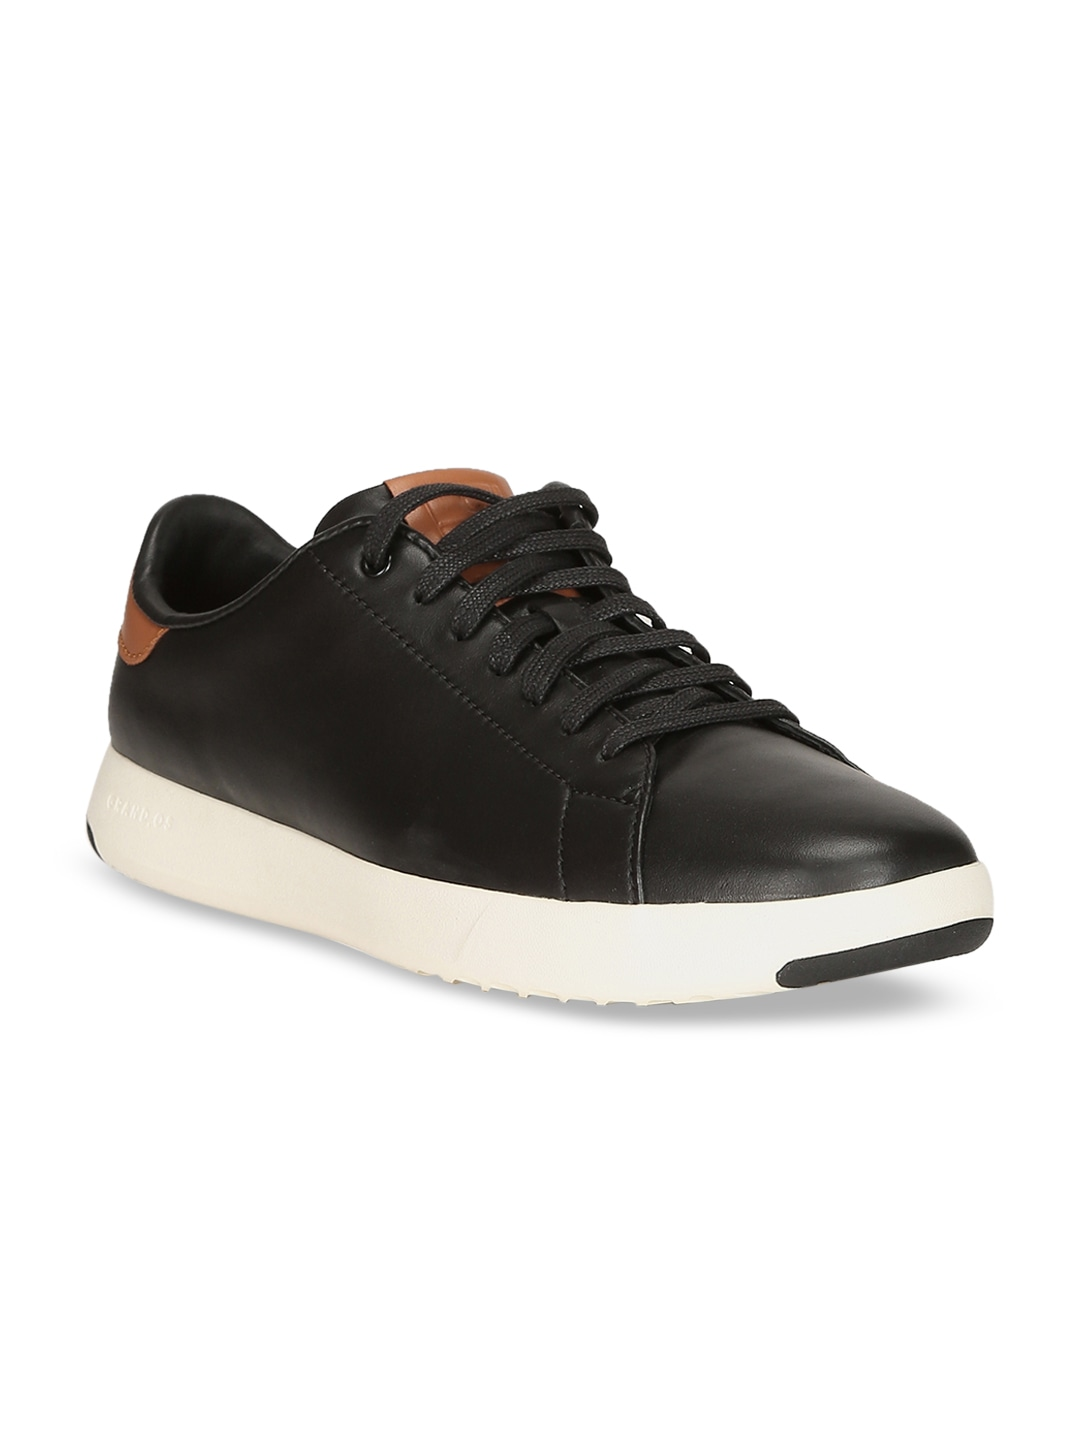 Black Leather GrandPro Tennis Sneakers